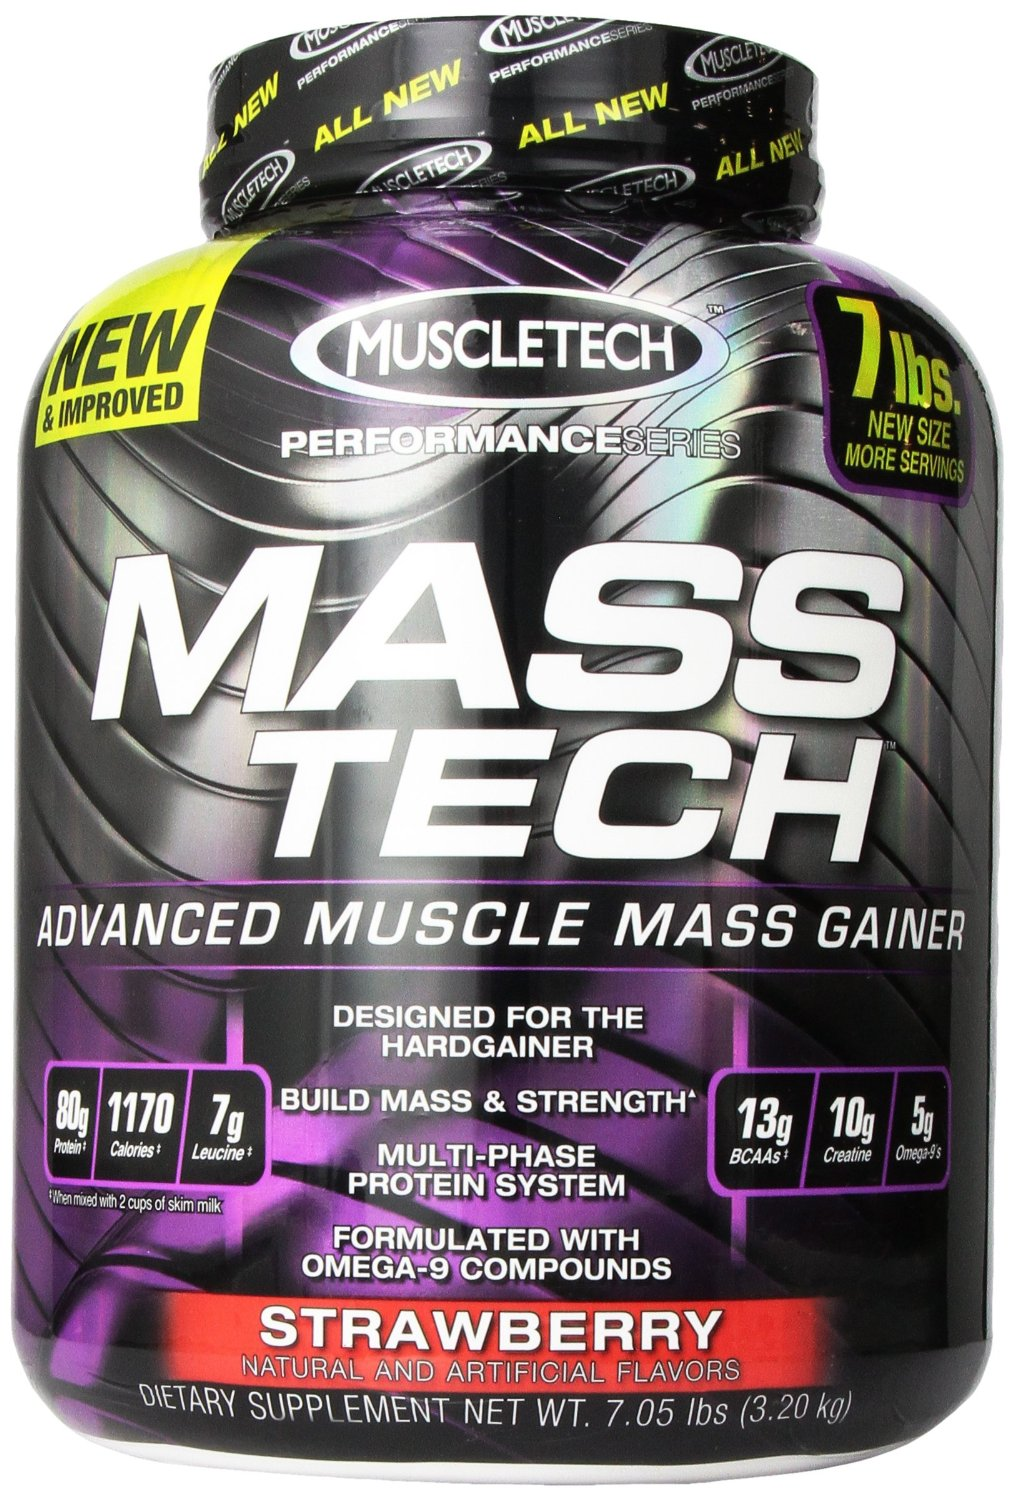 MuscleTech Masstech 性能补充剂